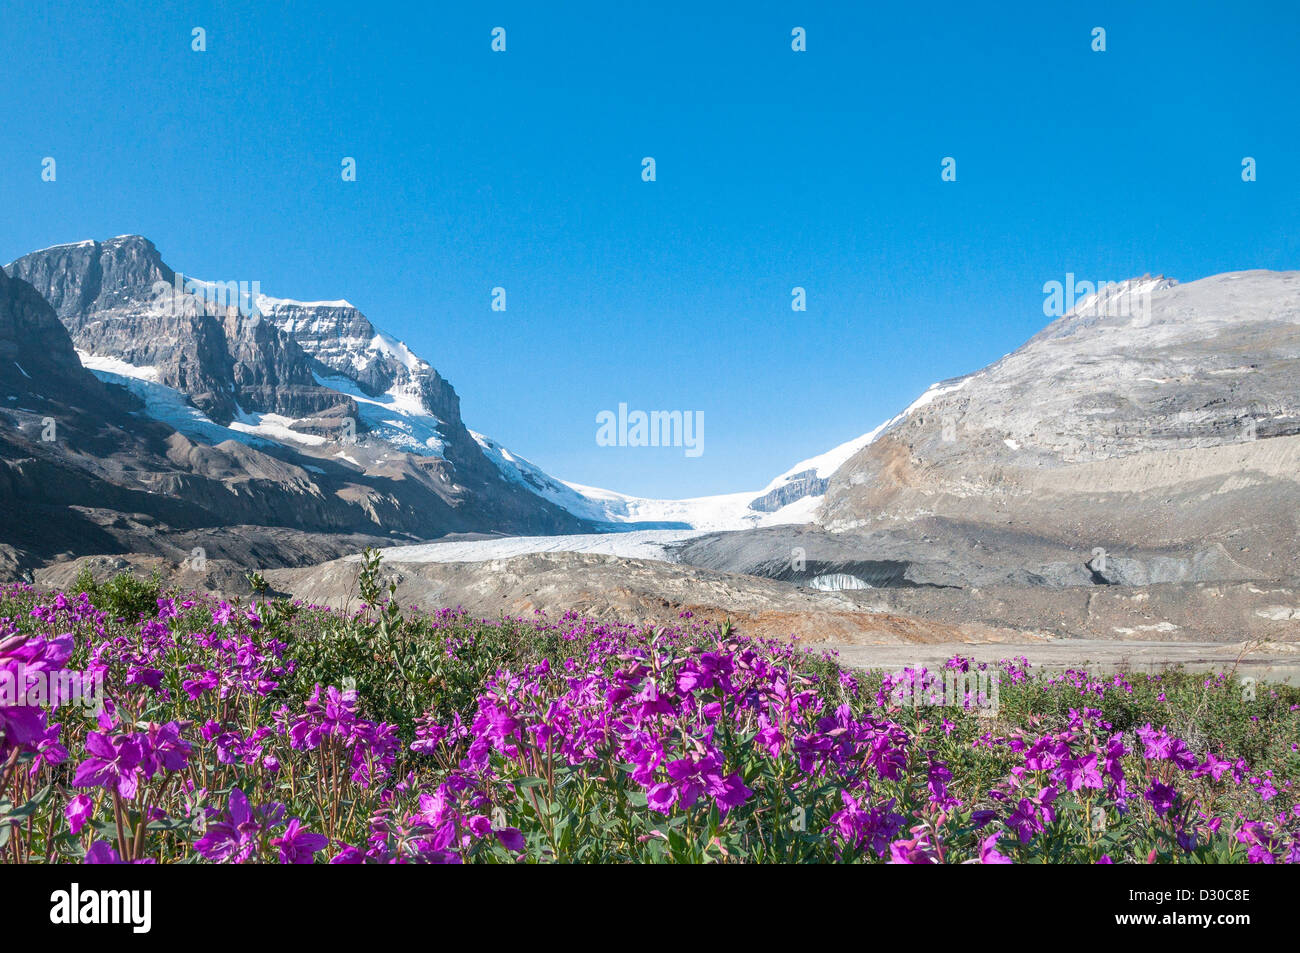 Wildflowers and Athabasca Icefields Glacier, , Jasper National Park, Alberta, Canada - Stock Image